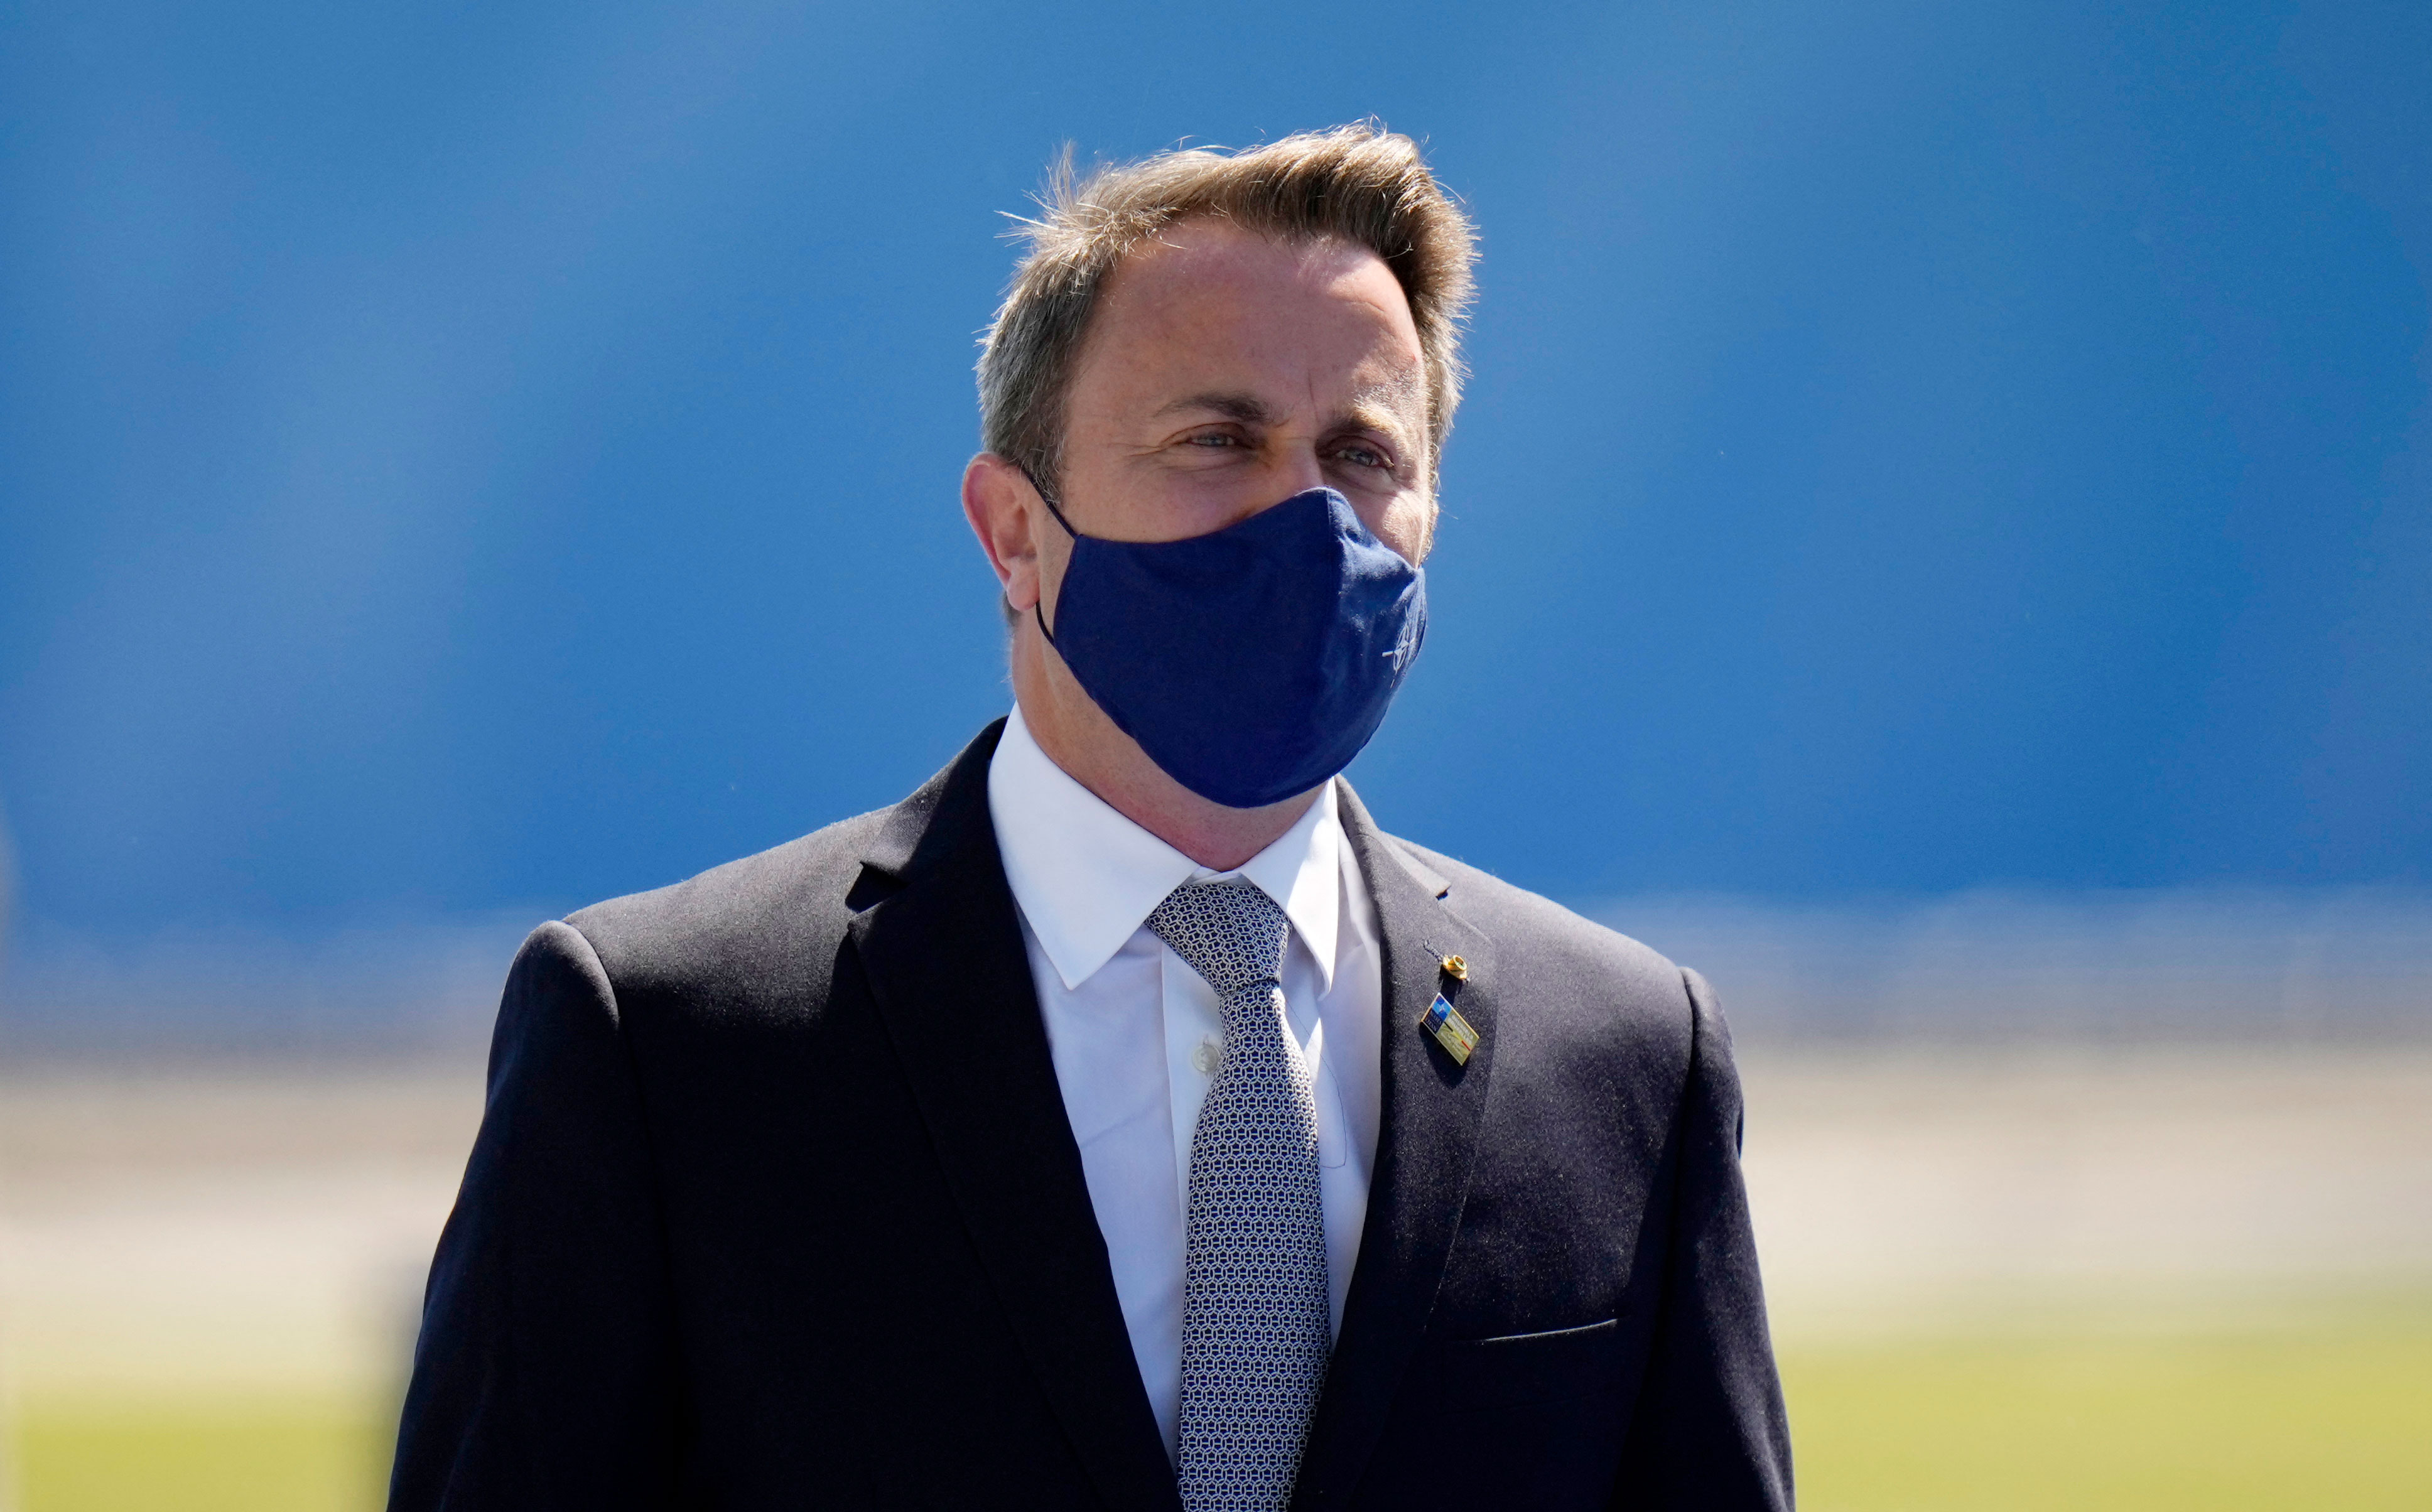 Luxembourg's Prime Minister Xavier Bettel arrives for the NATO summit in Brussels, Belgium, on June 14.